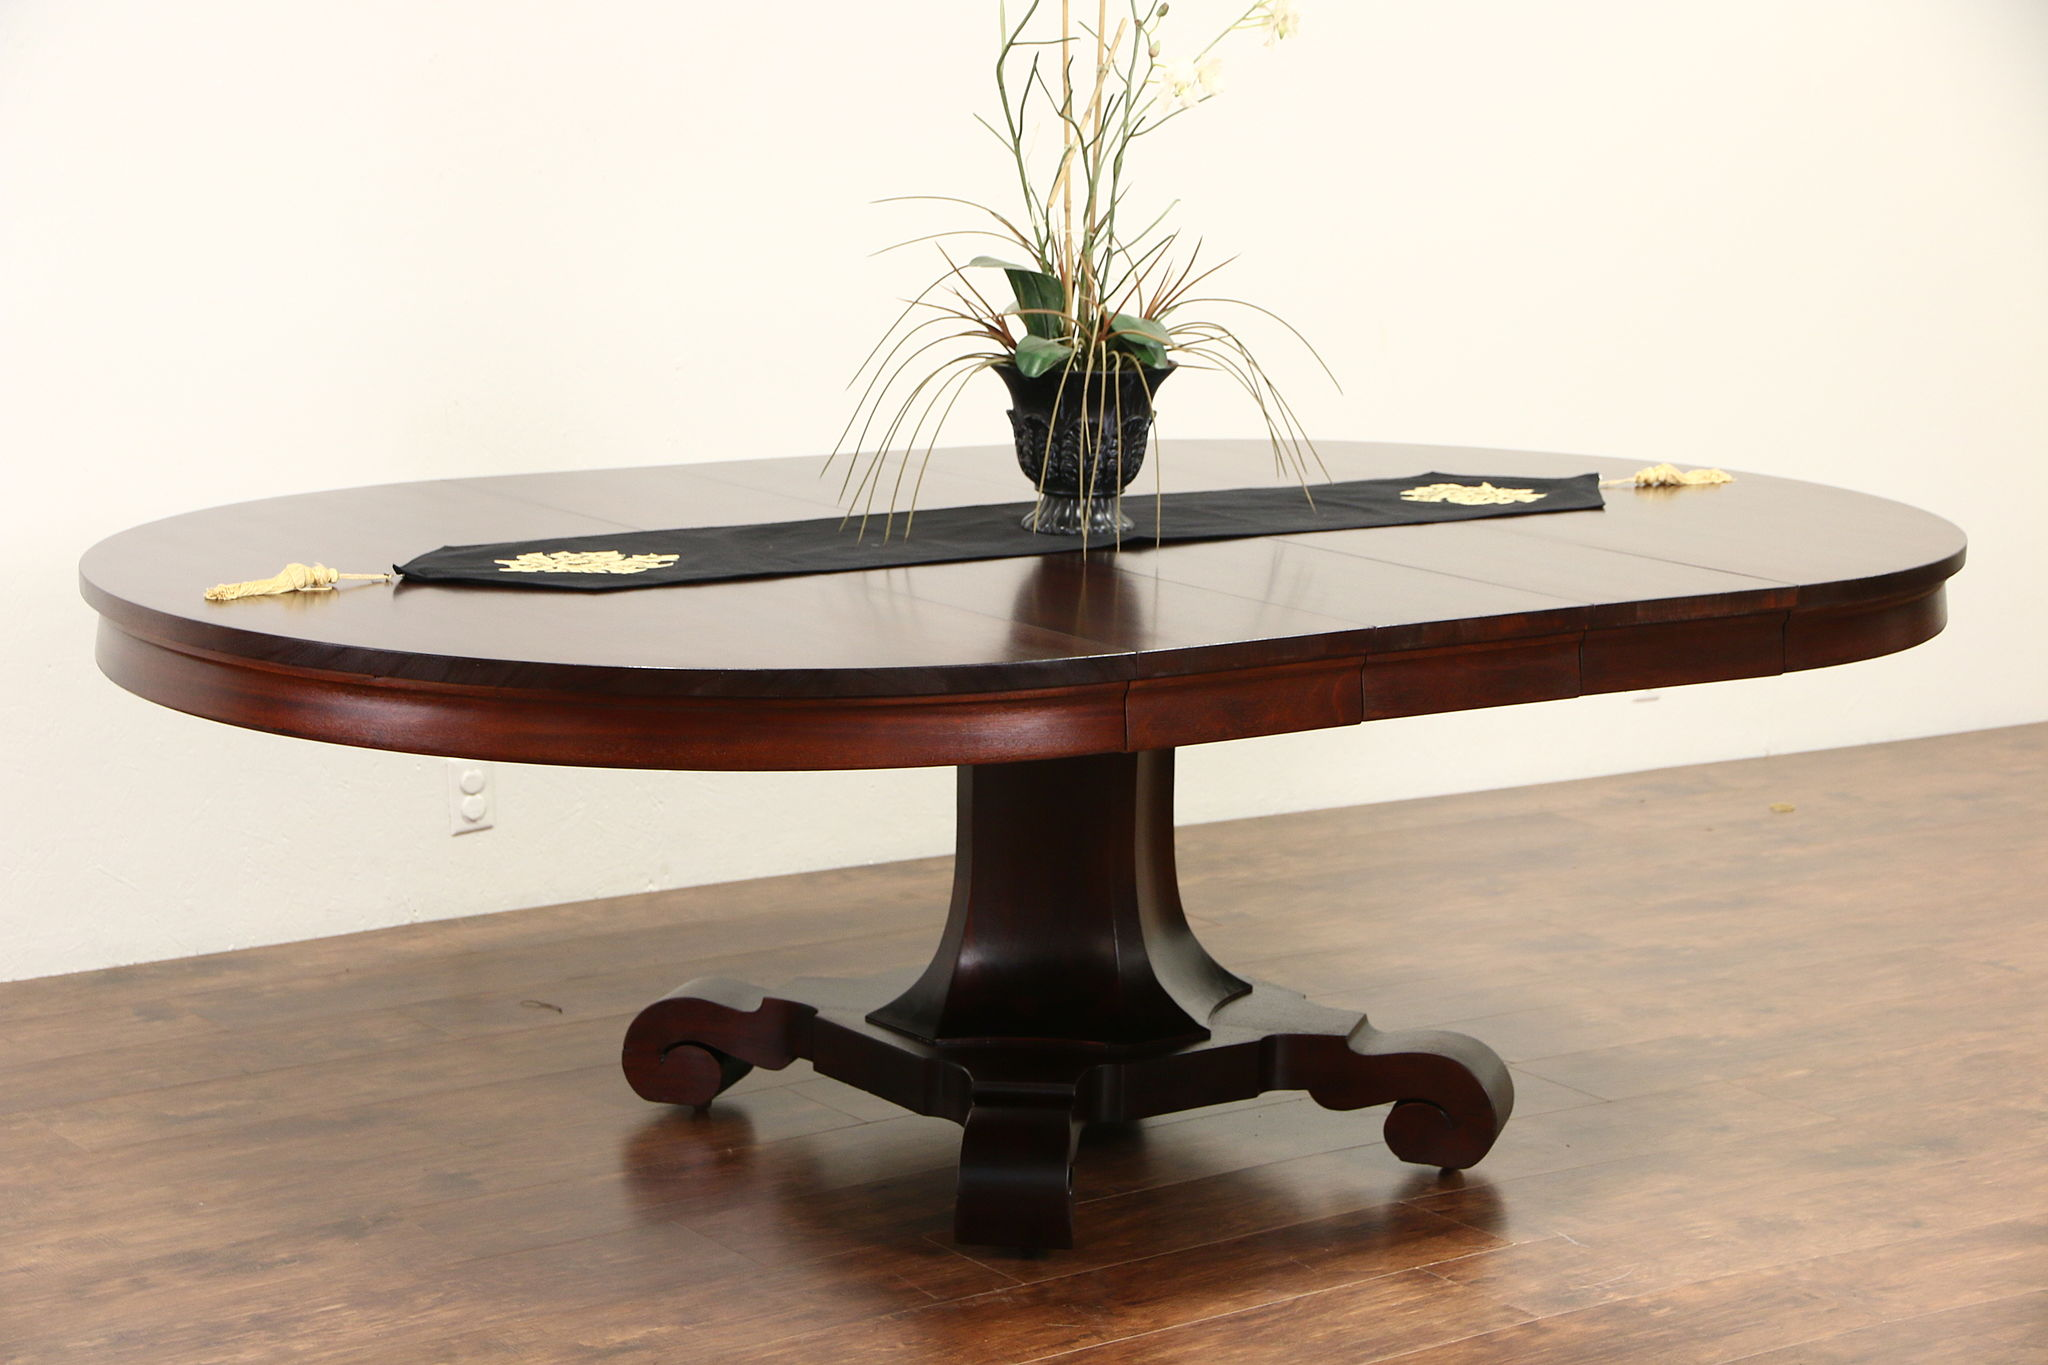 Empire Mahogany 1900 Antique Round Pedestal Dining Table, 3 Leaves